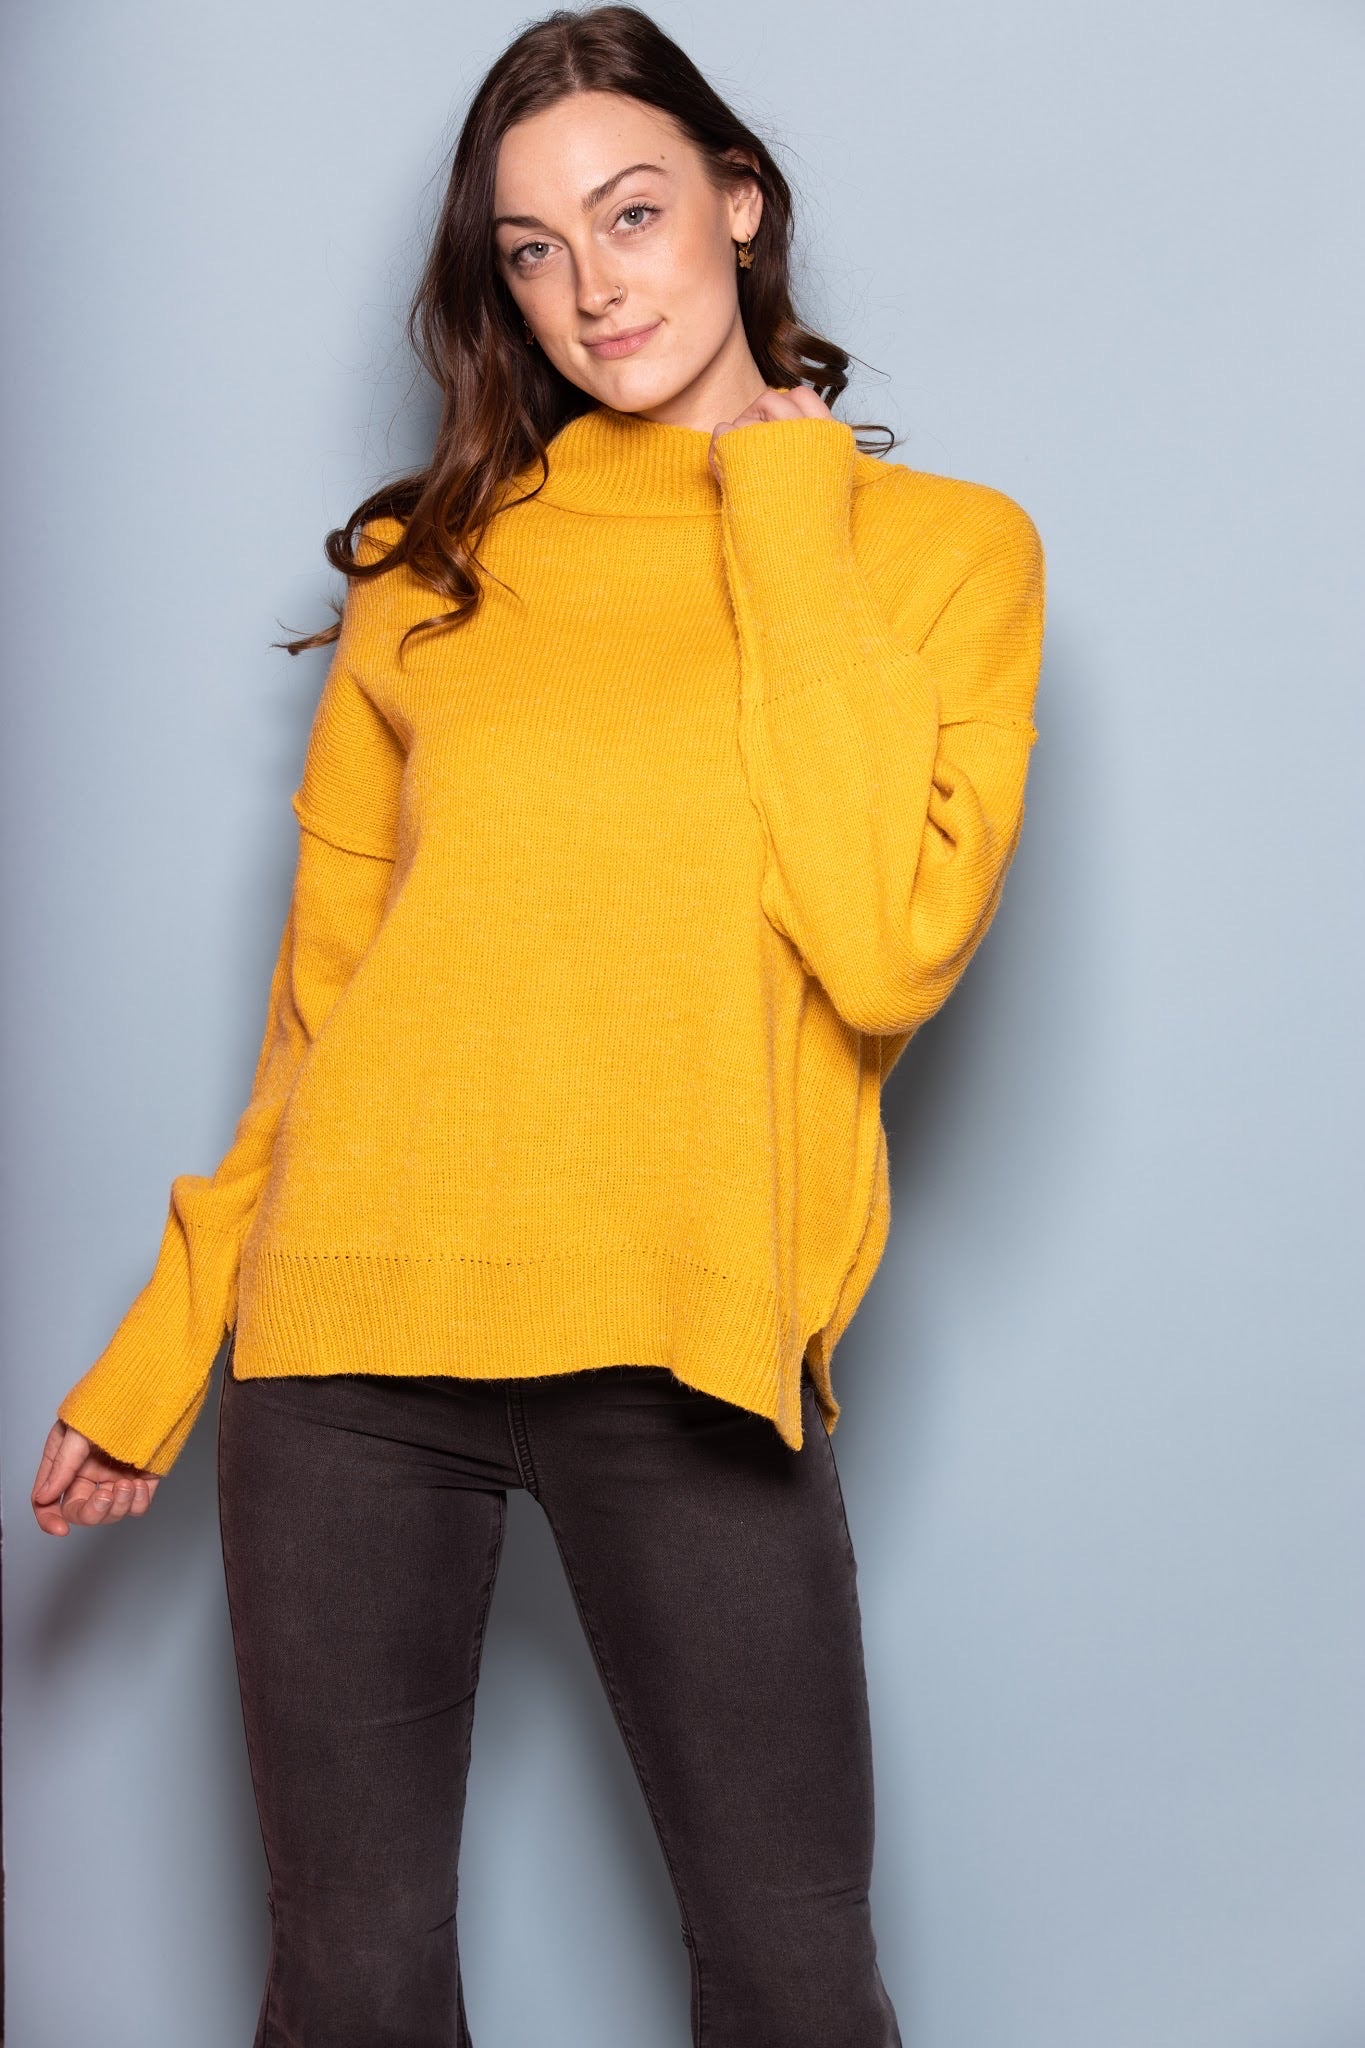 Come On Over Mustard Turtleneck Sweater - impromptu boutique